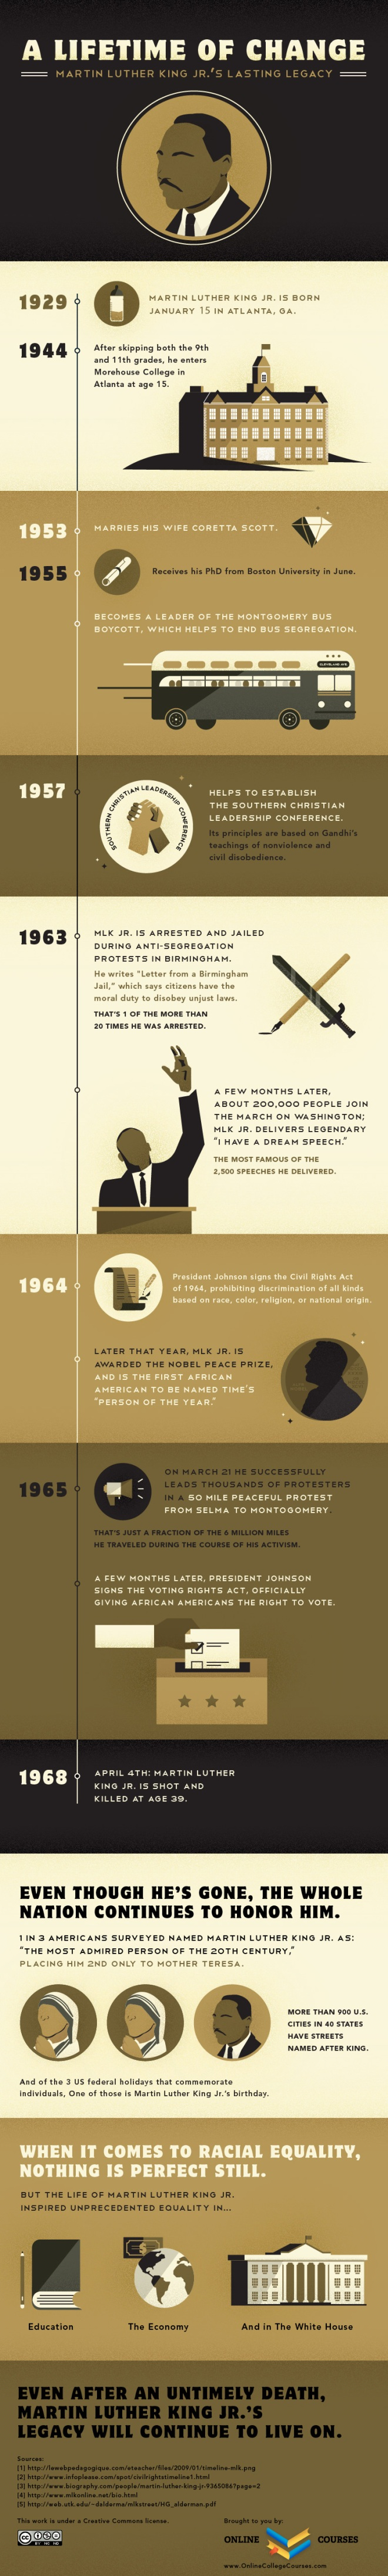 The Importance of MLK Day